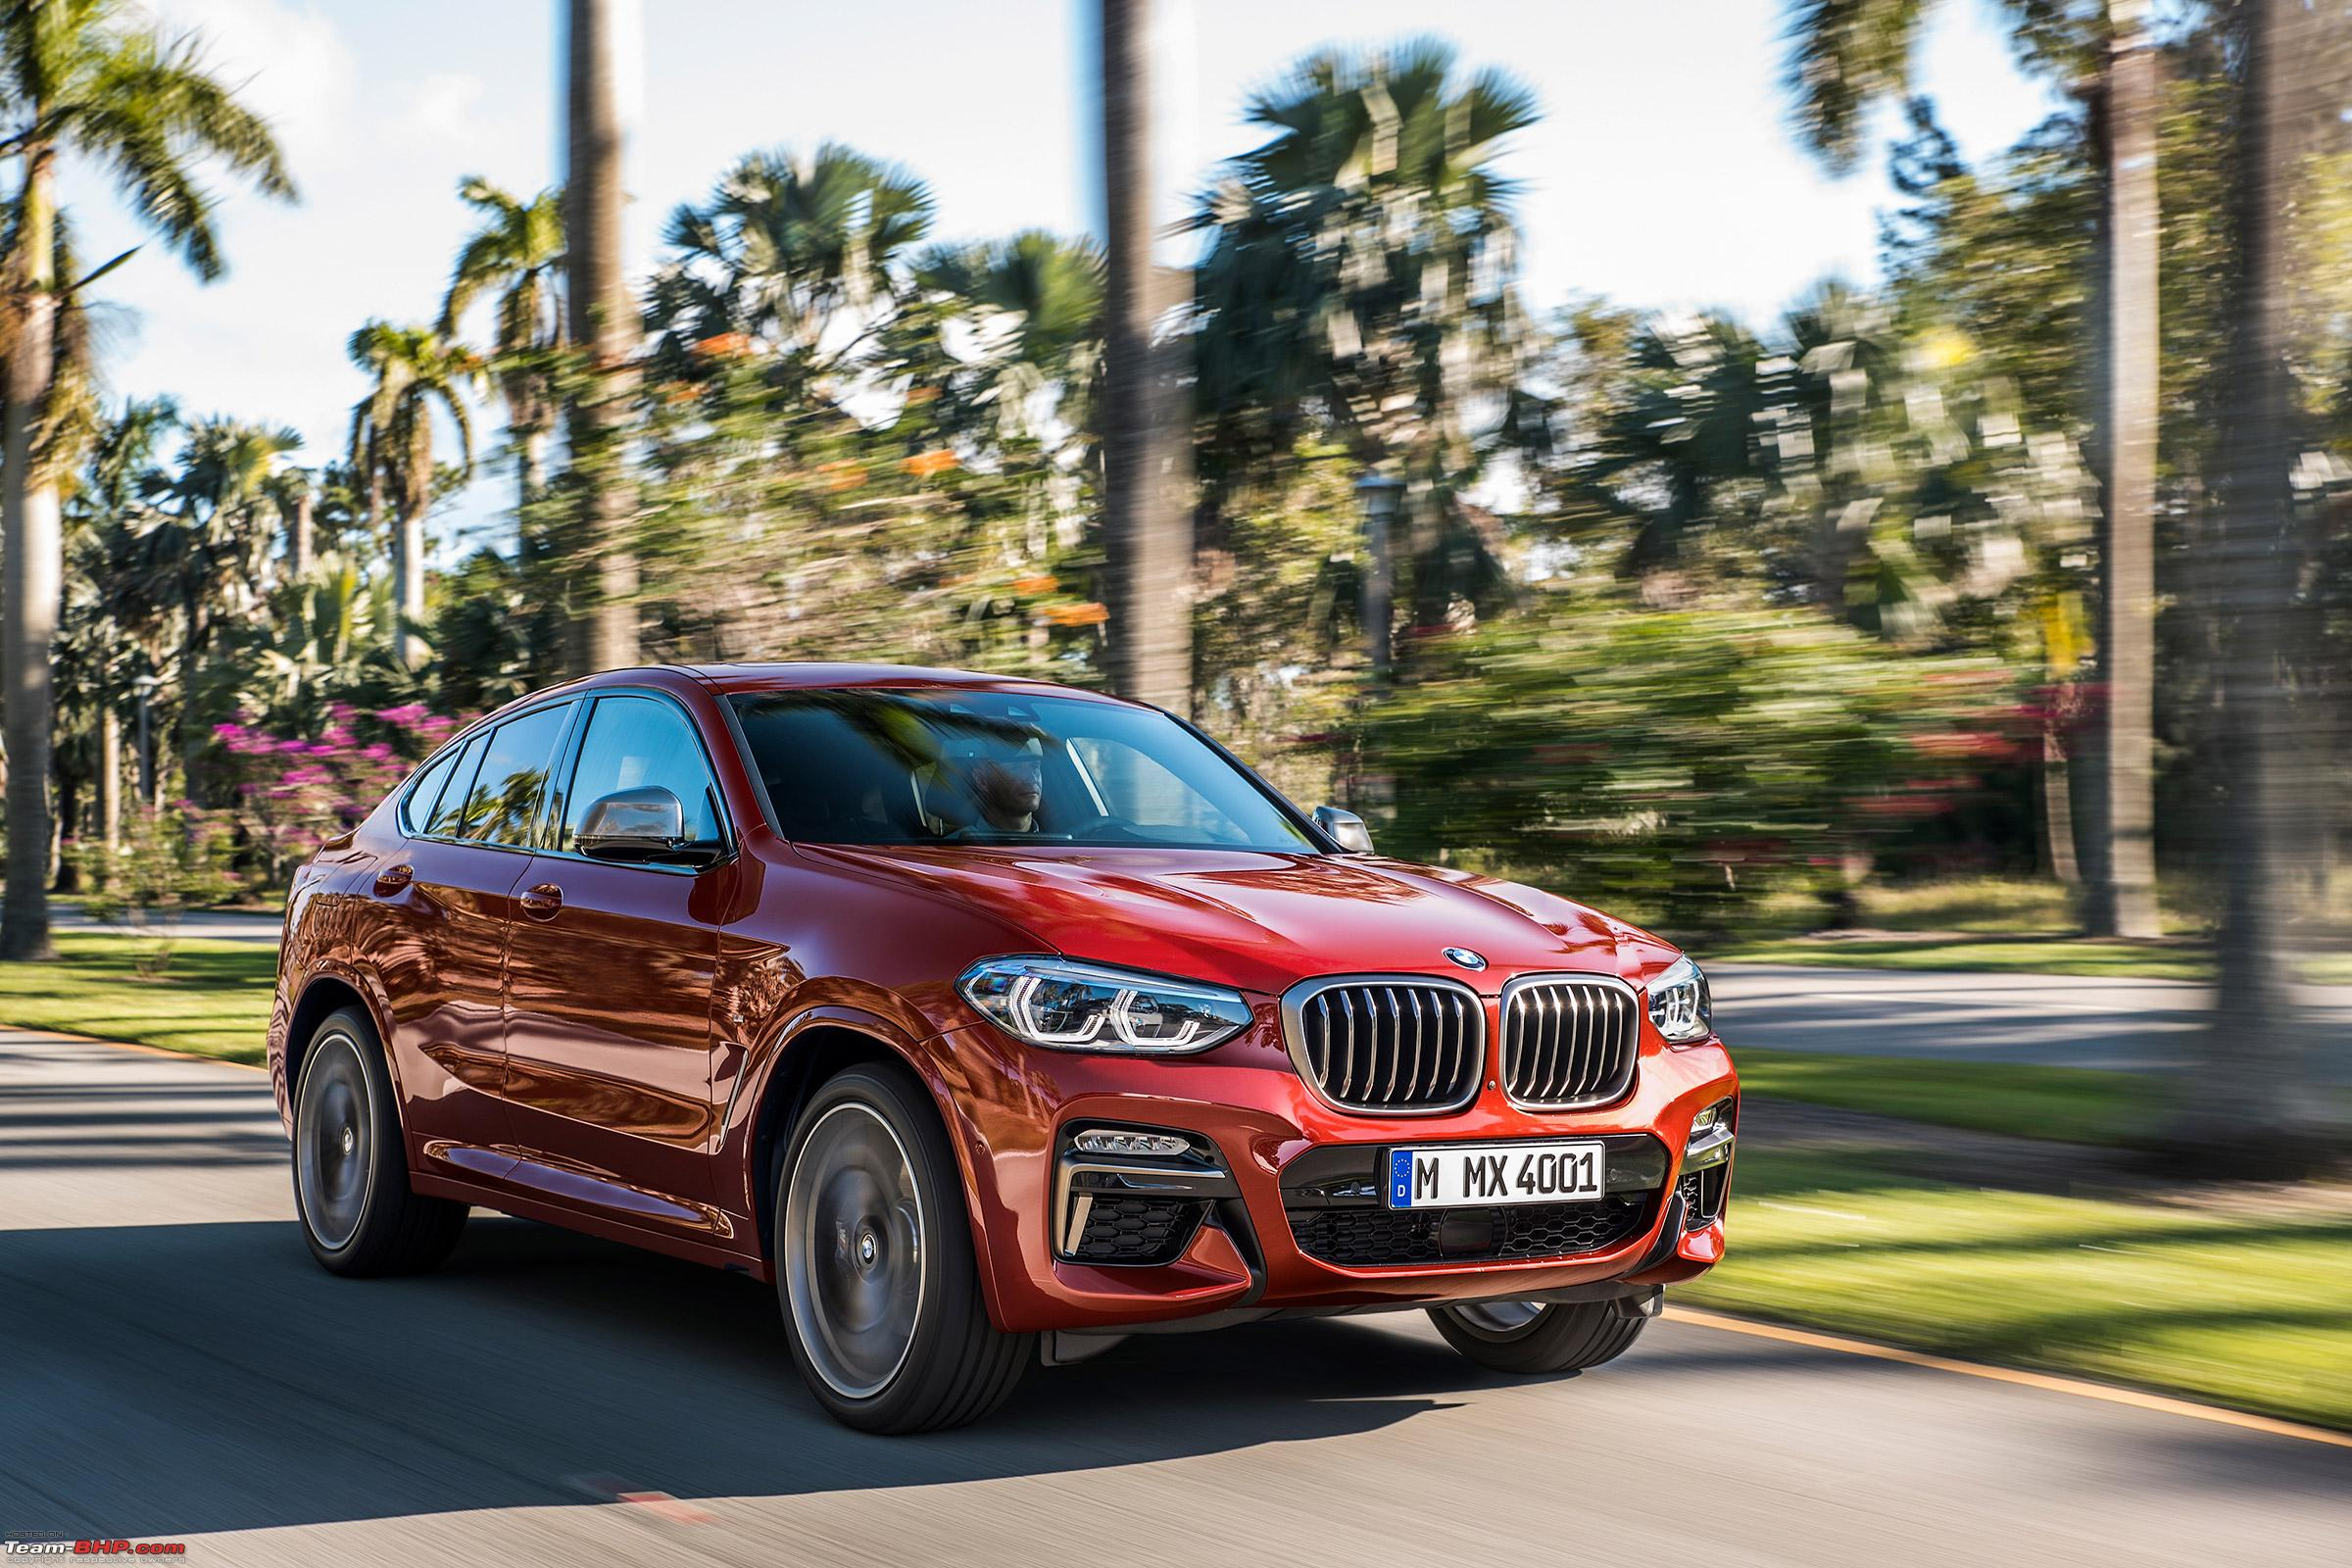 Rumour Bmw X4 Coming To India In 2019 Edit Launched At 6060 Lakhs